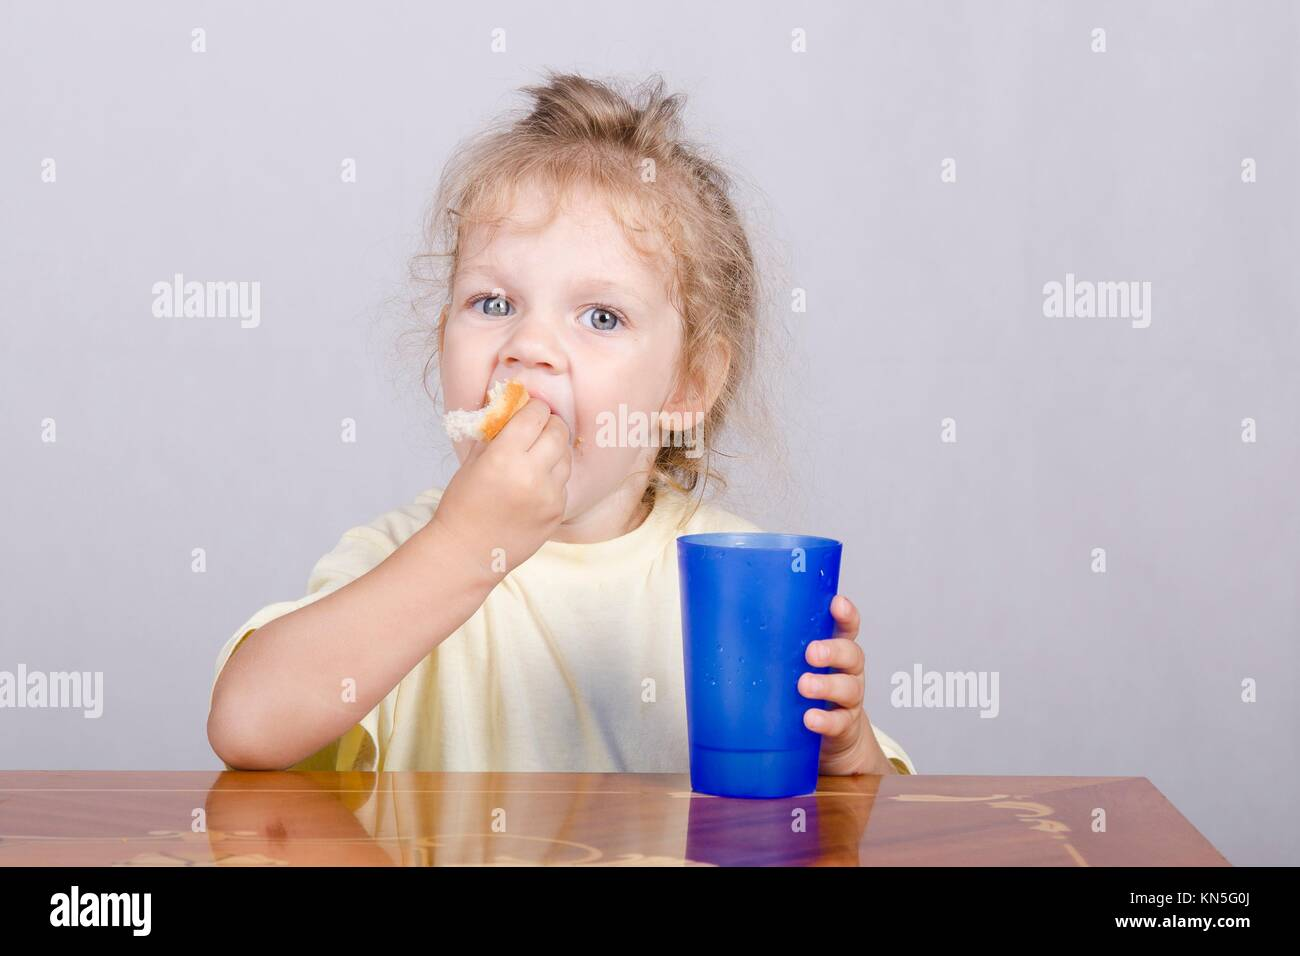 Two-year-old girl sitting at the table, eating a muffin and drinking from a plastic Cup. Stock Photo